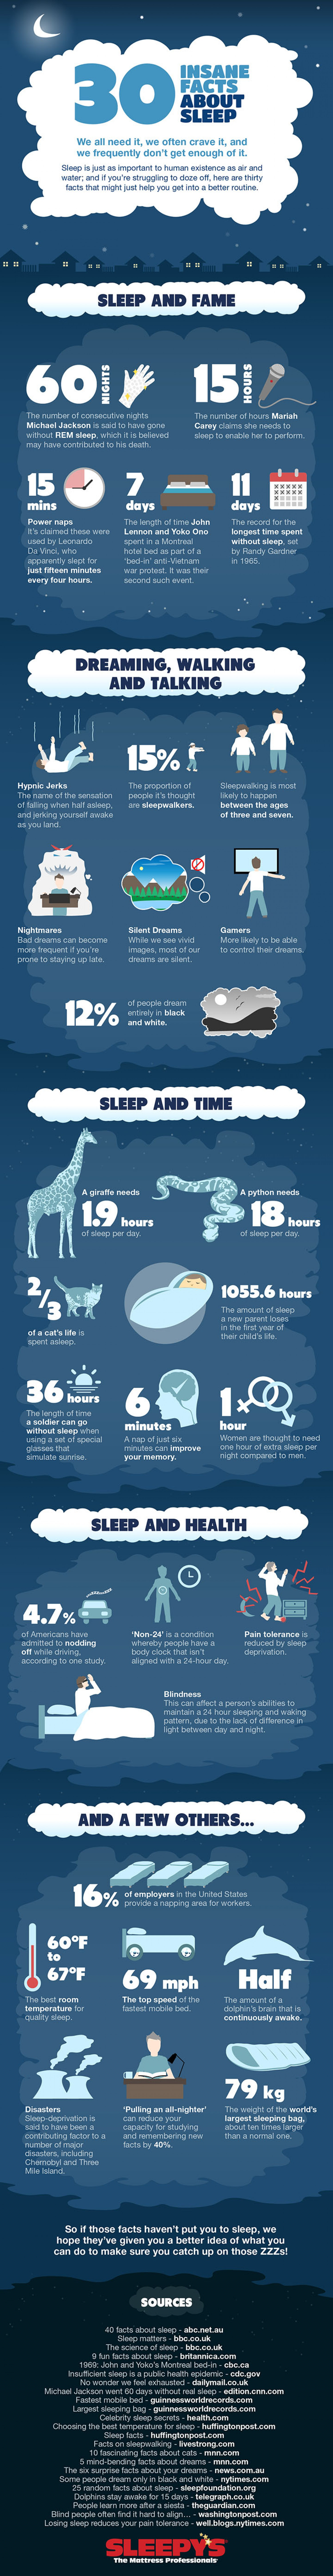 30 Strange Facts About Sleep You Might Not Know [Infographic]